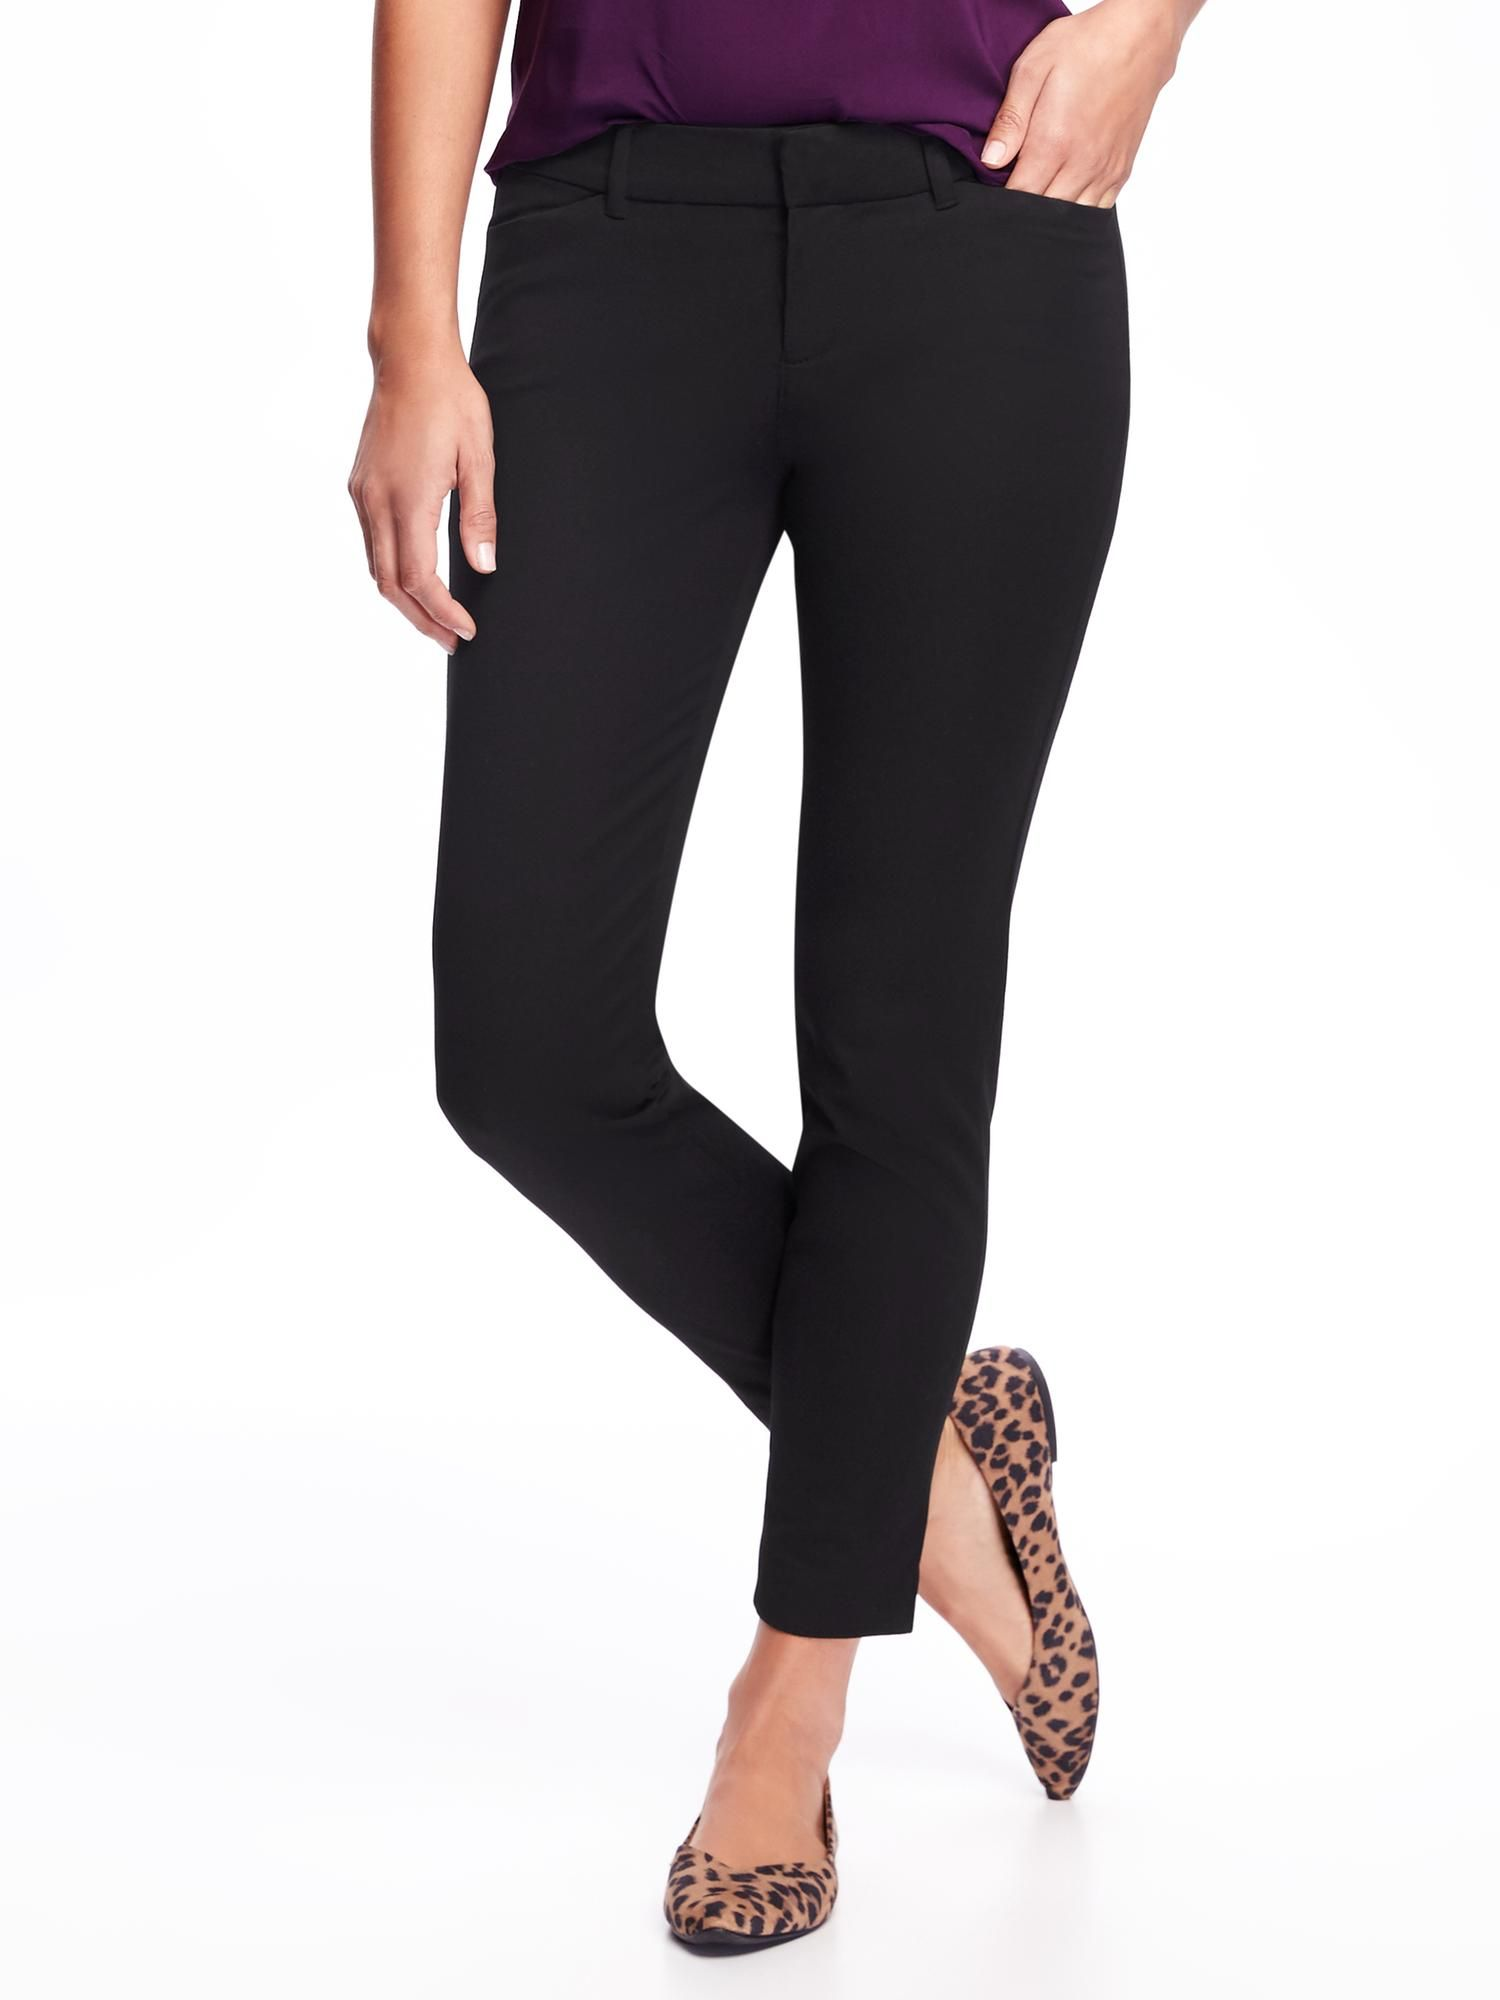 5671dc1dee864 Pixie Mid-Rise Ankle Pants for Women in Black   can ALWAYS use a pair of  these ankle versions in size 4tall in black. Only  29!!